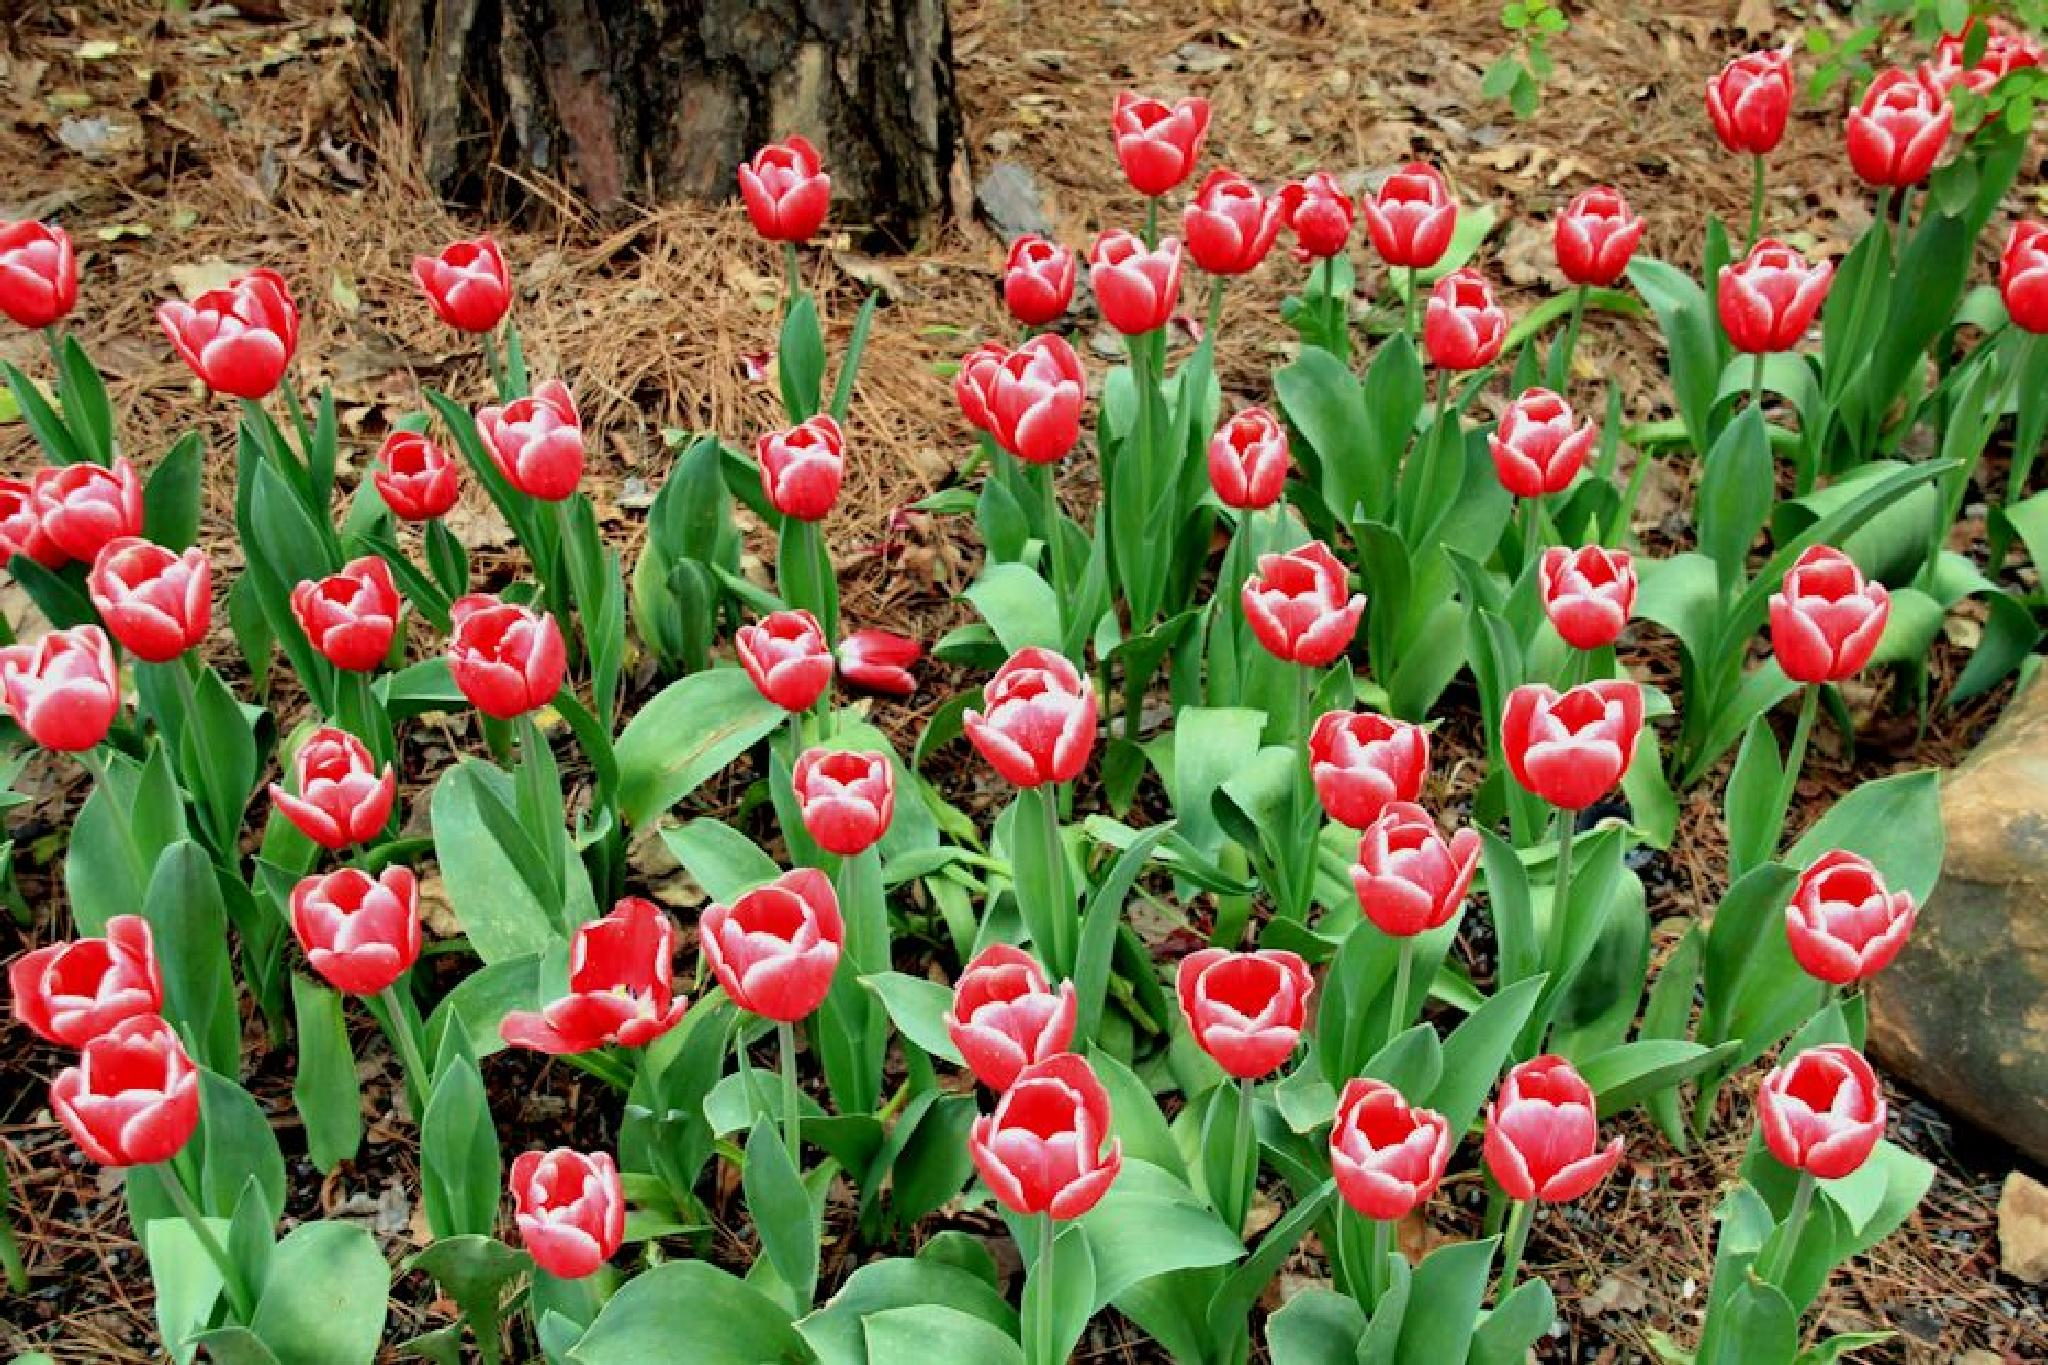 Red Tulips by dubblybubbly51